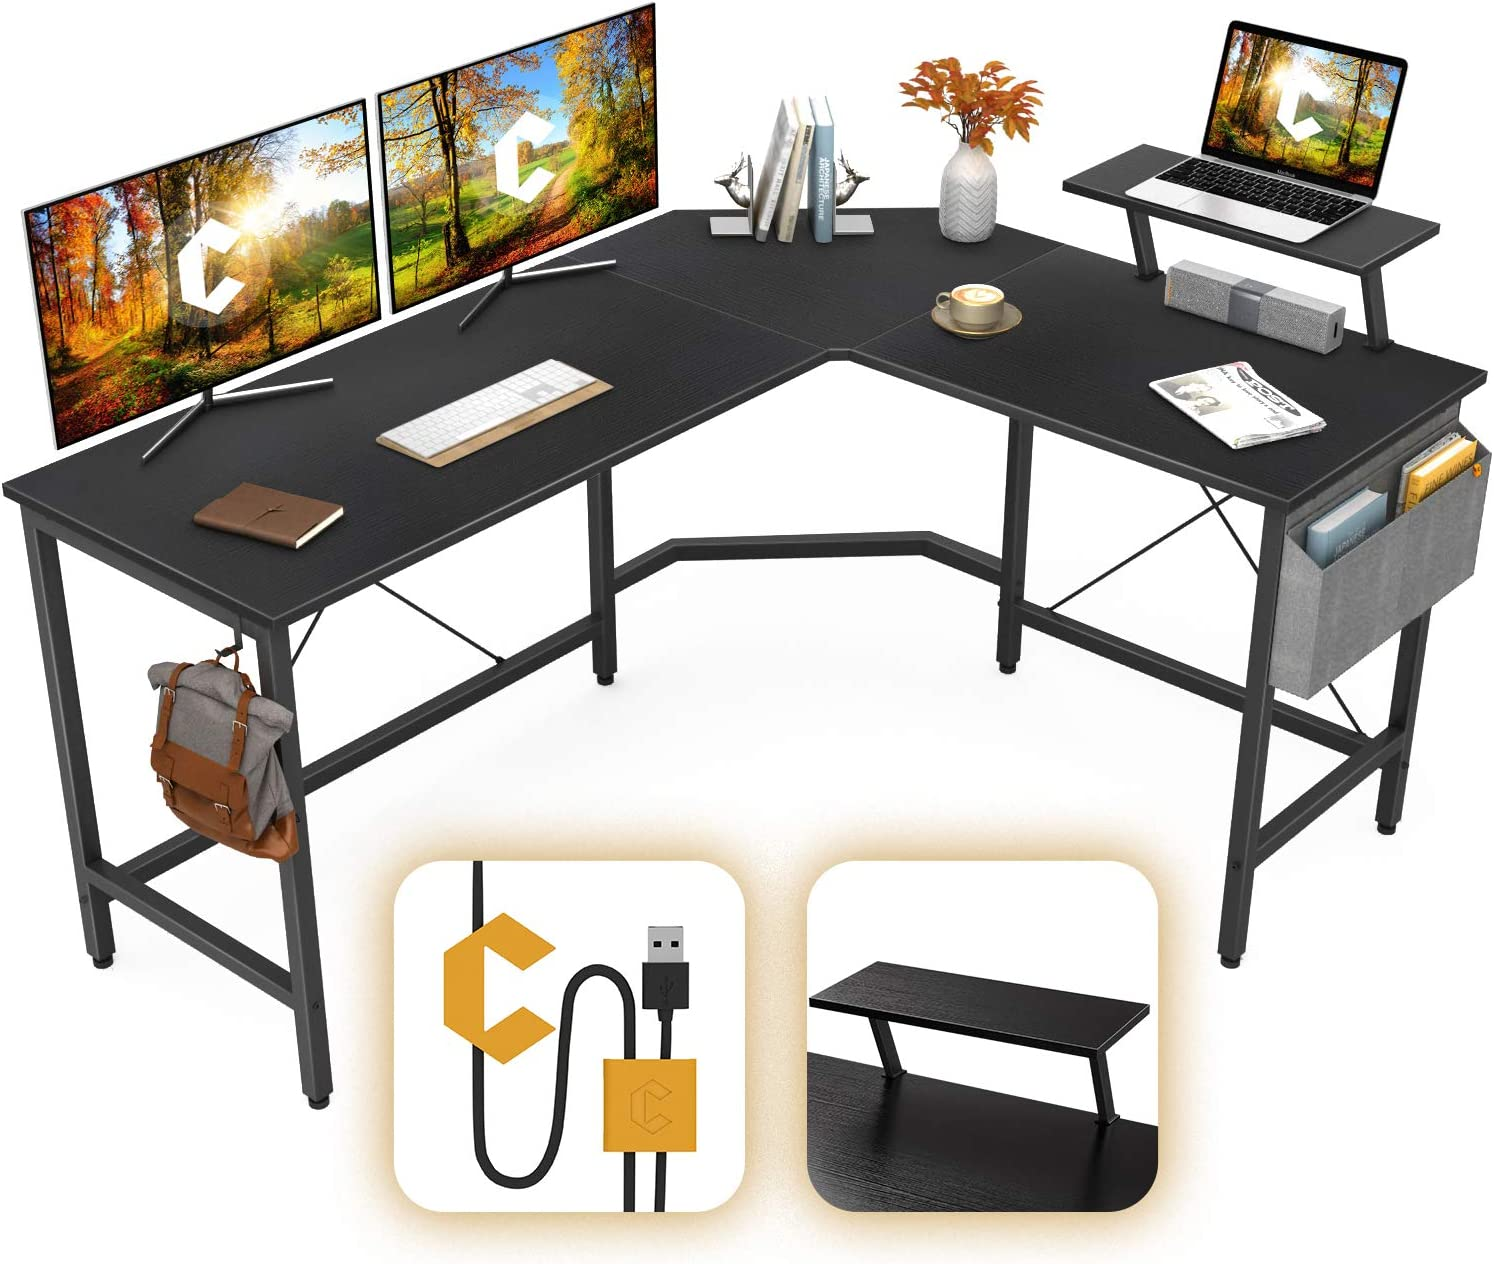 Cubiker Modern L-Shaped Computer Office Desk, Corner Gaming Desk with Monitor Stand, Home Study Writing Table Workstation for Small Spaces, Black